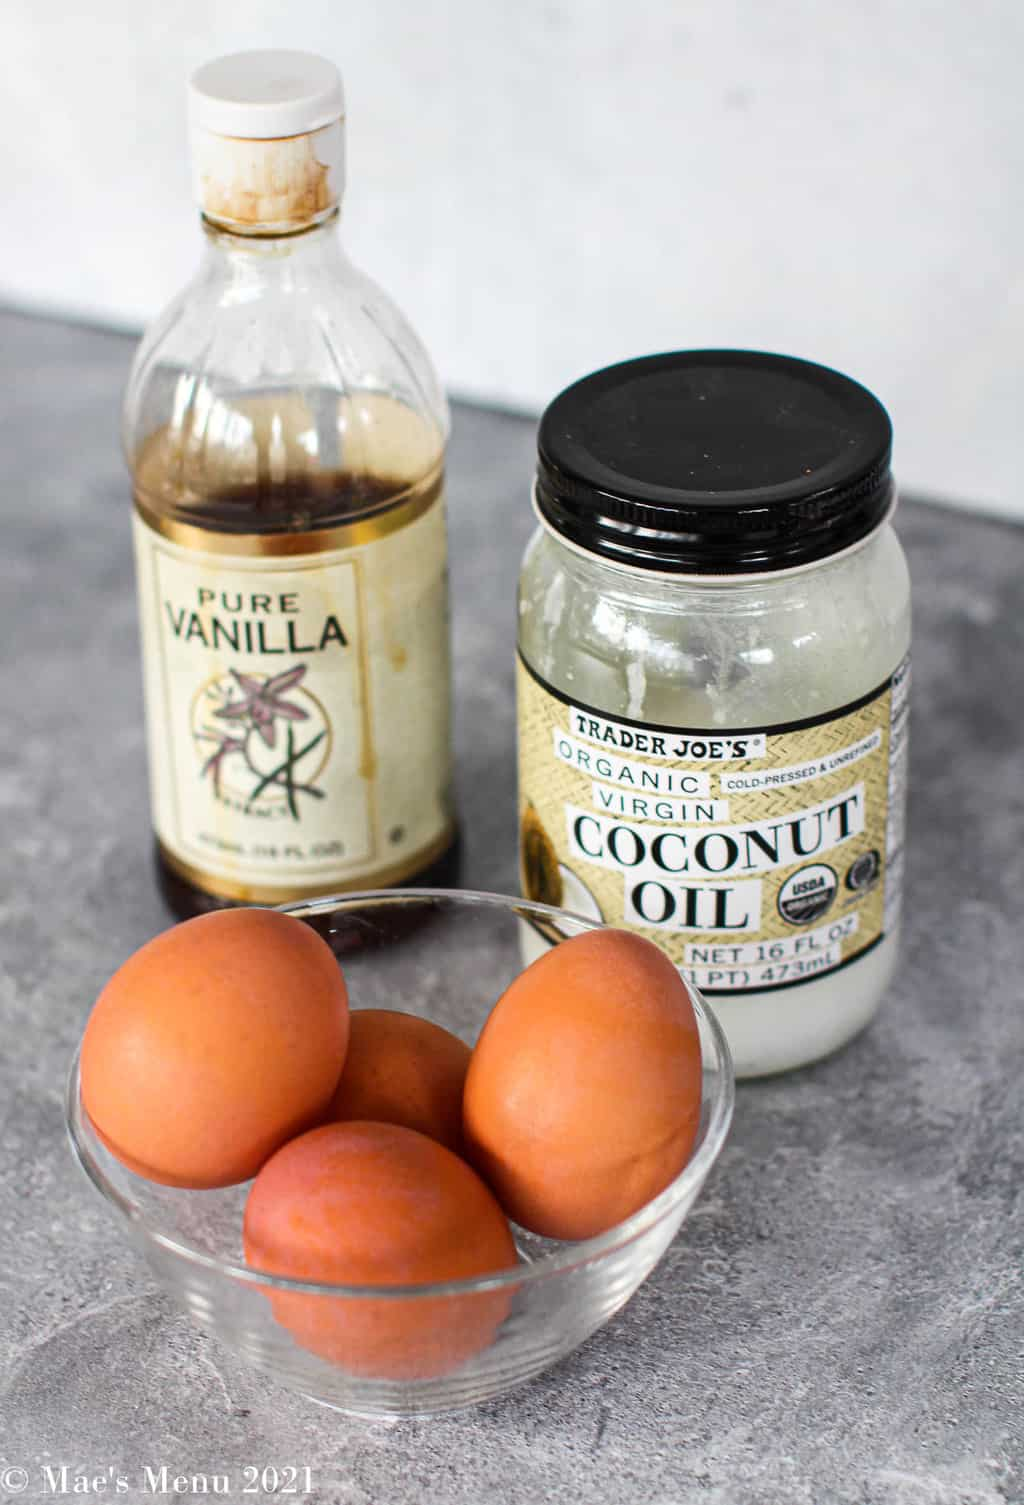 Sweet potato ingredients on the counter: a dish of eggs, a jar of coconut oil and vanilla extract